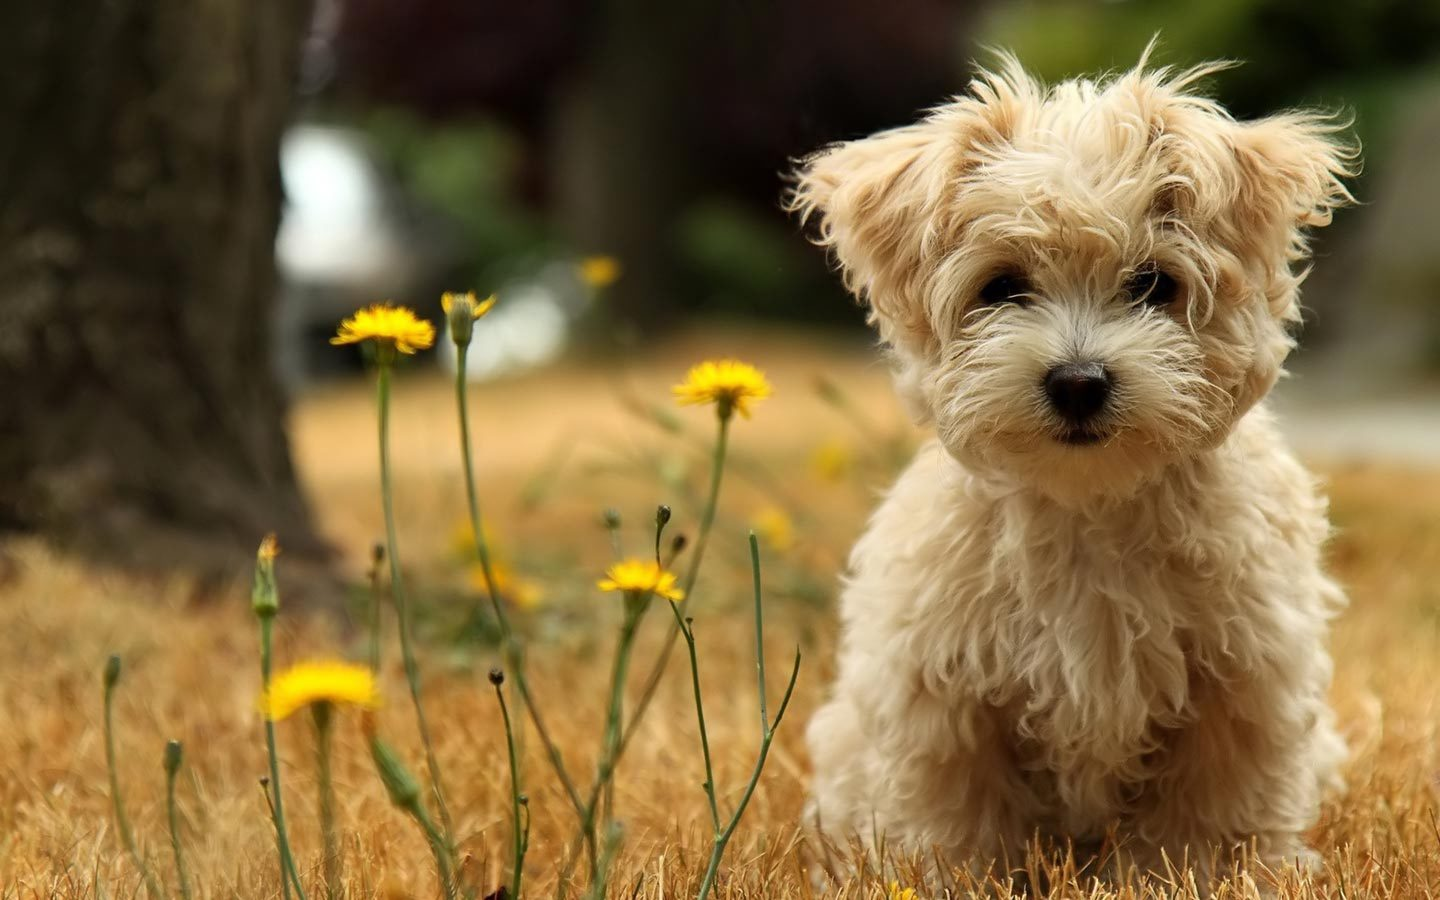 16274 download wallpaper Animals, Dogs screensavers and pictures for free